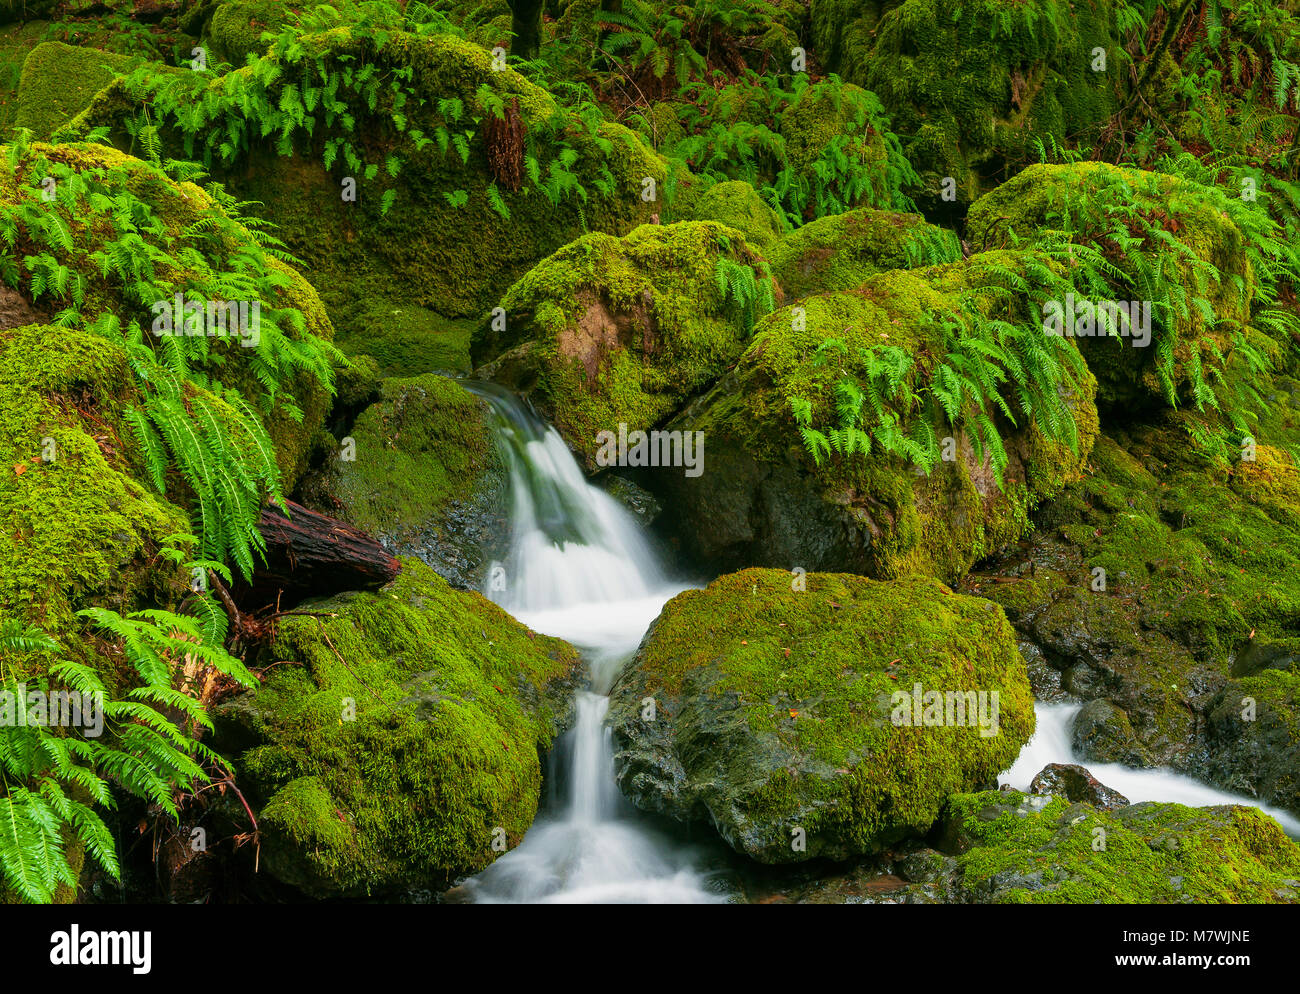 Fällt, Cataract Canyon, Mount Tamalpais, Marin County, Kalifornien Stockbild